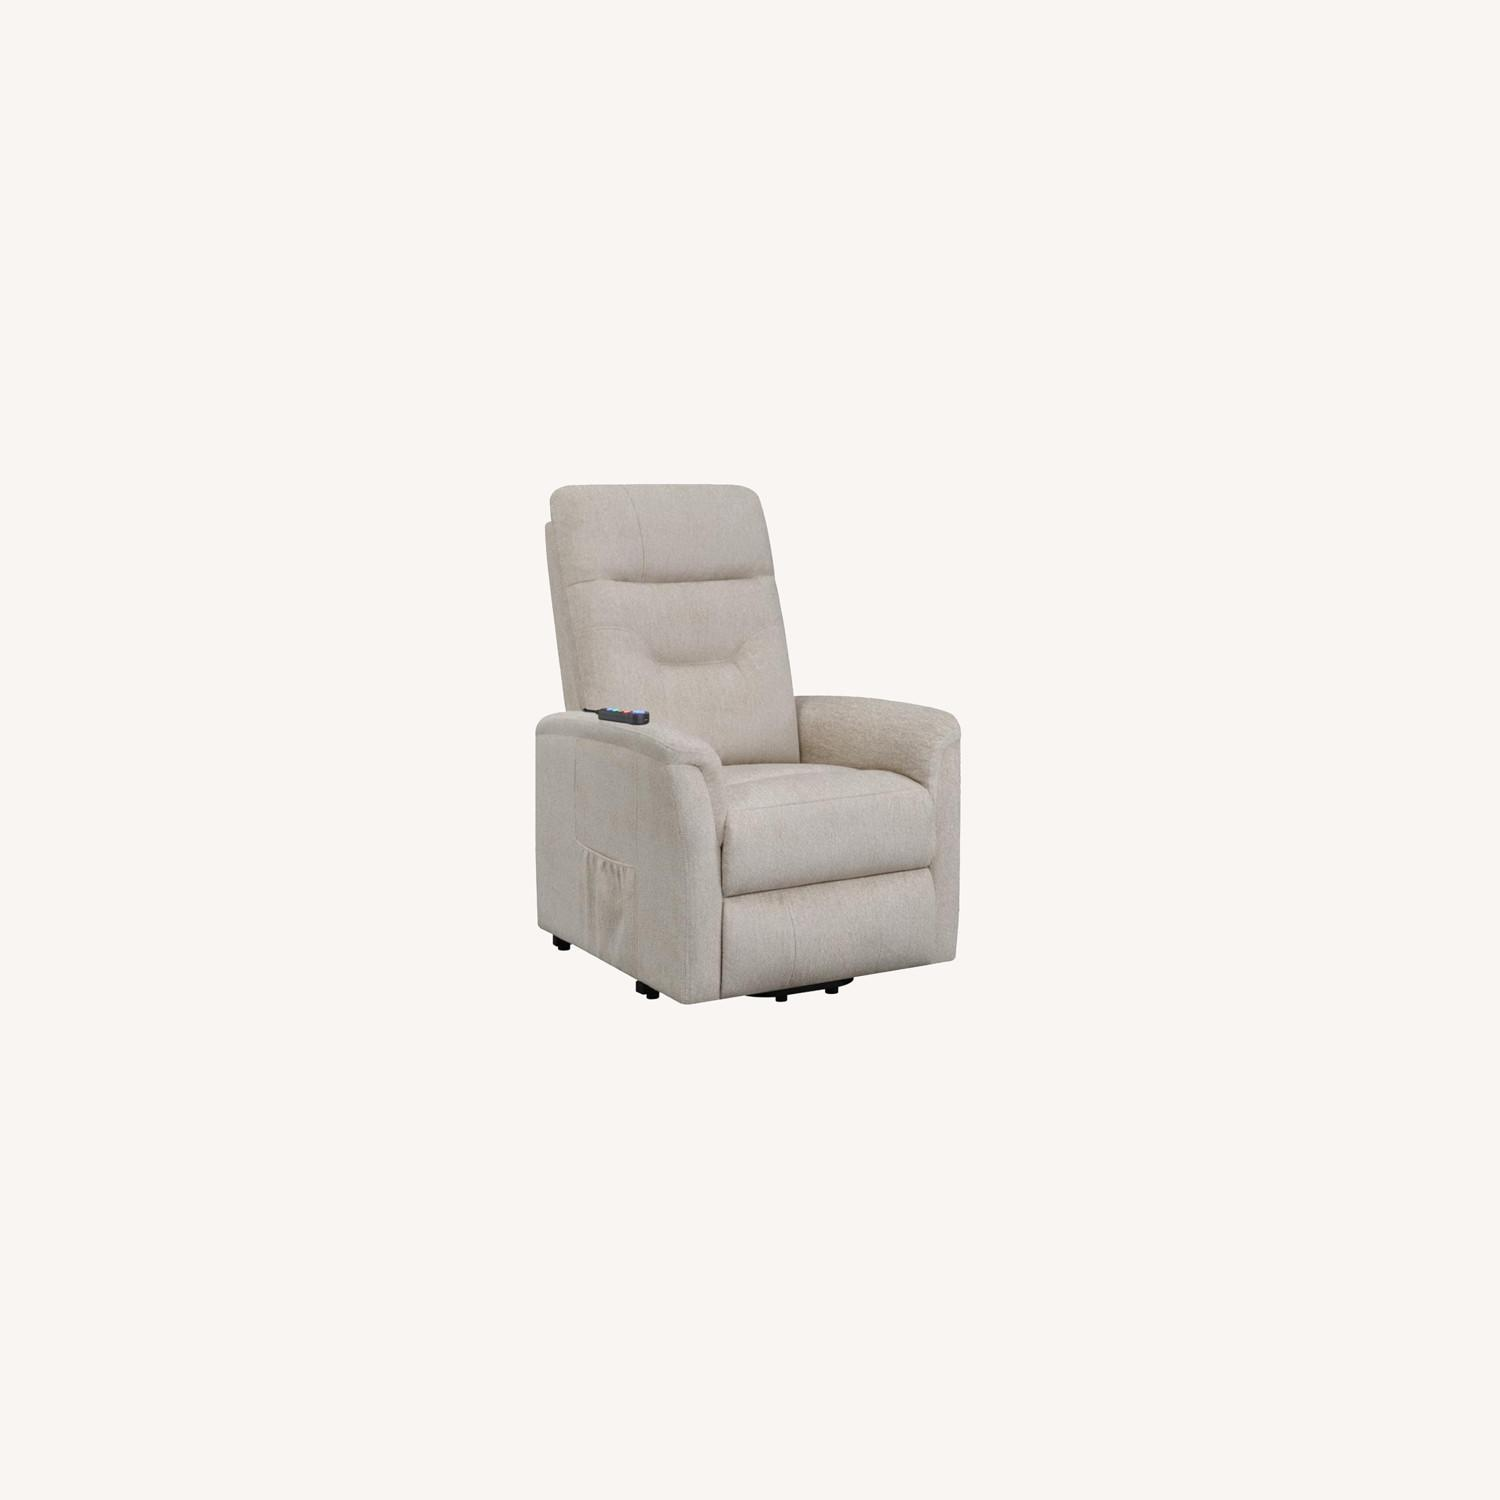 Power Lift Massage Chair In Beige Fabric - image-9